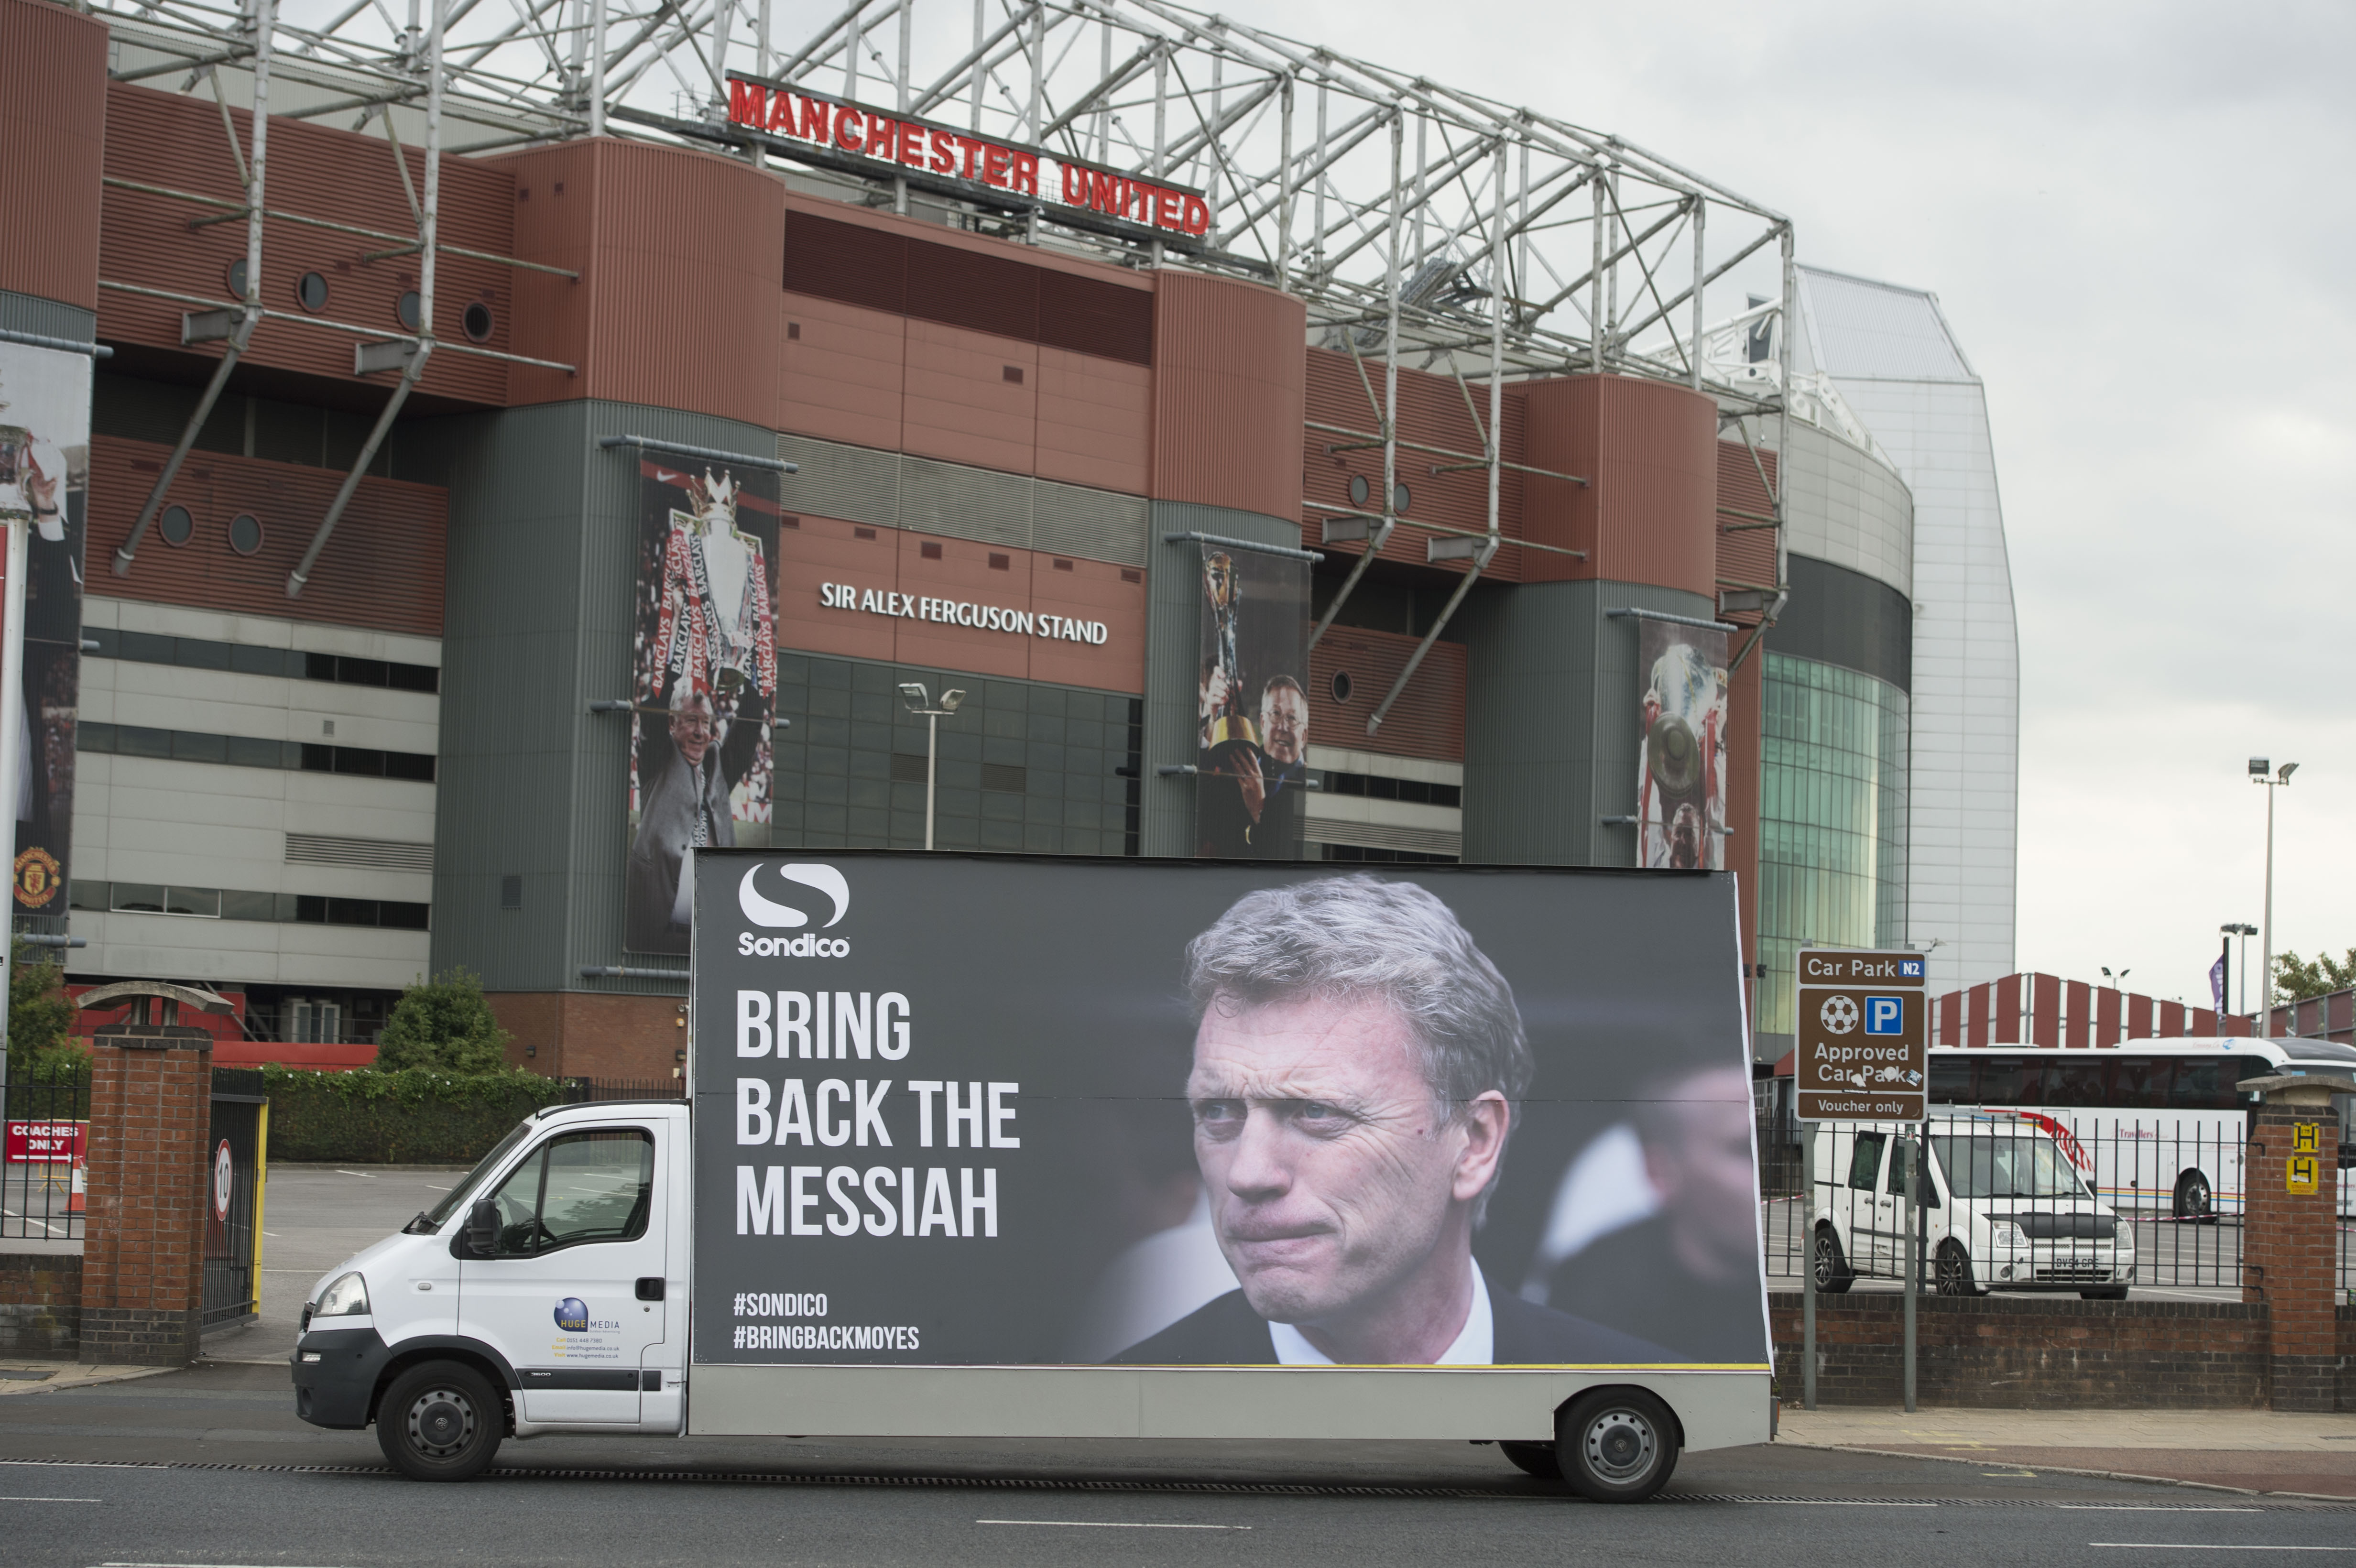 MK Dons sponsors troll Manchester United after Capital One Cup thrashing by calling for David Moyes return